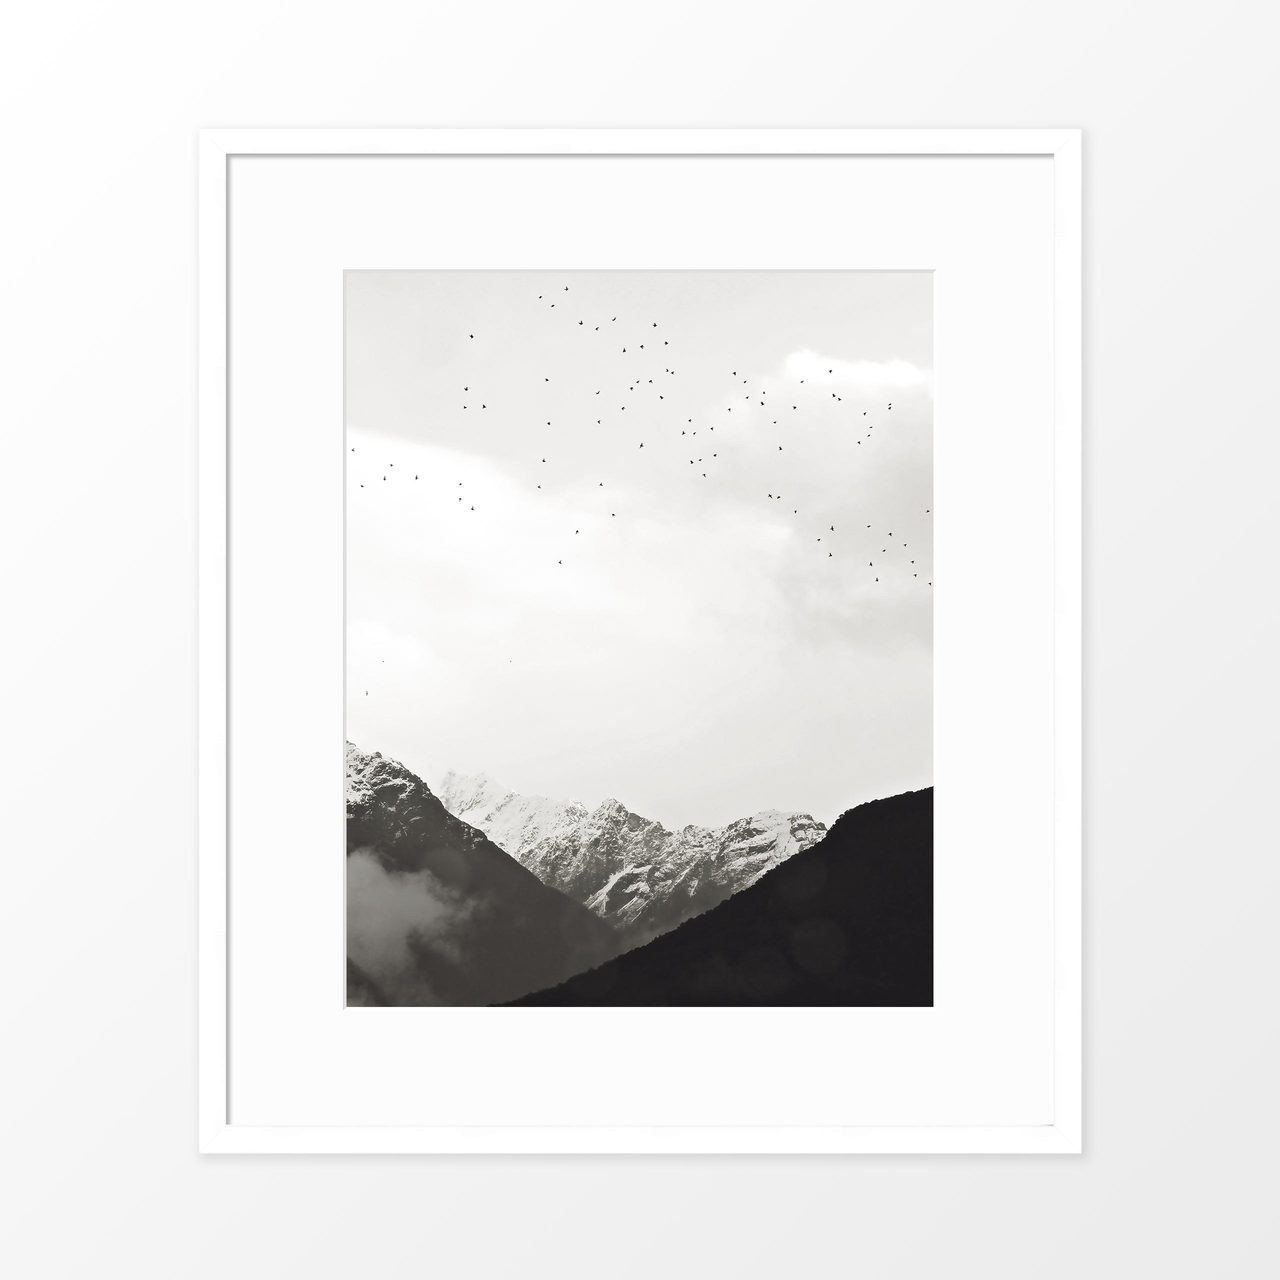 'Fly with Me' Photography Poster from The Printed Home